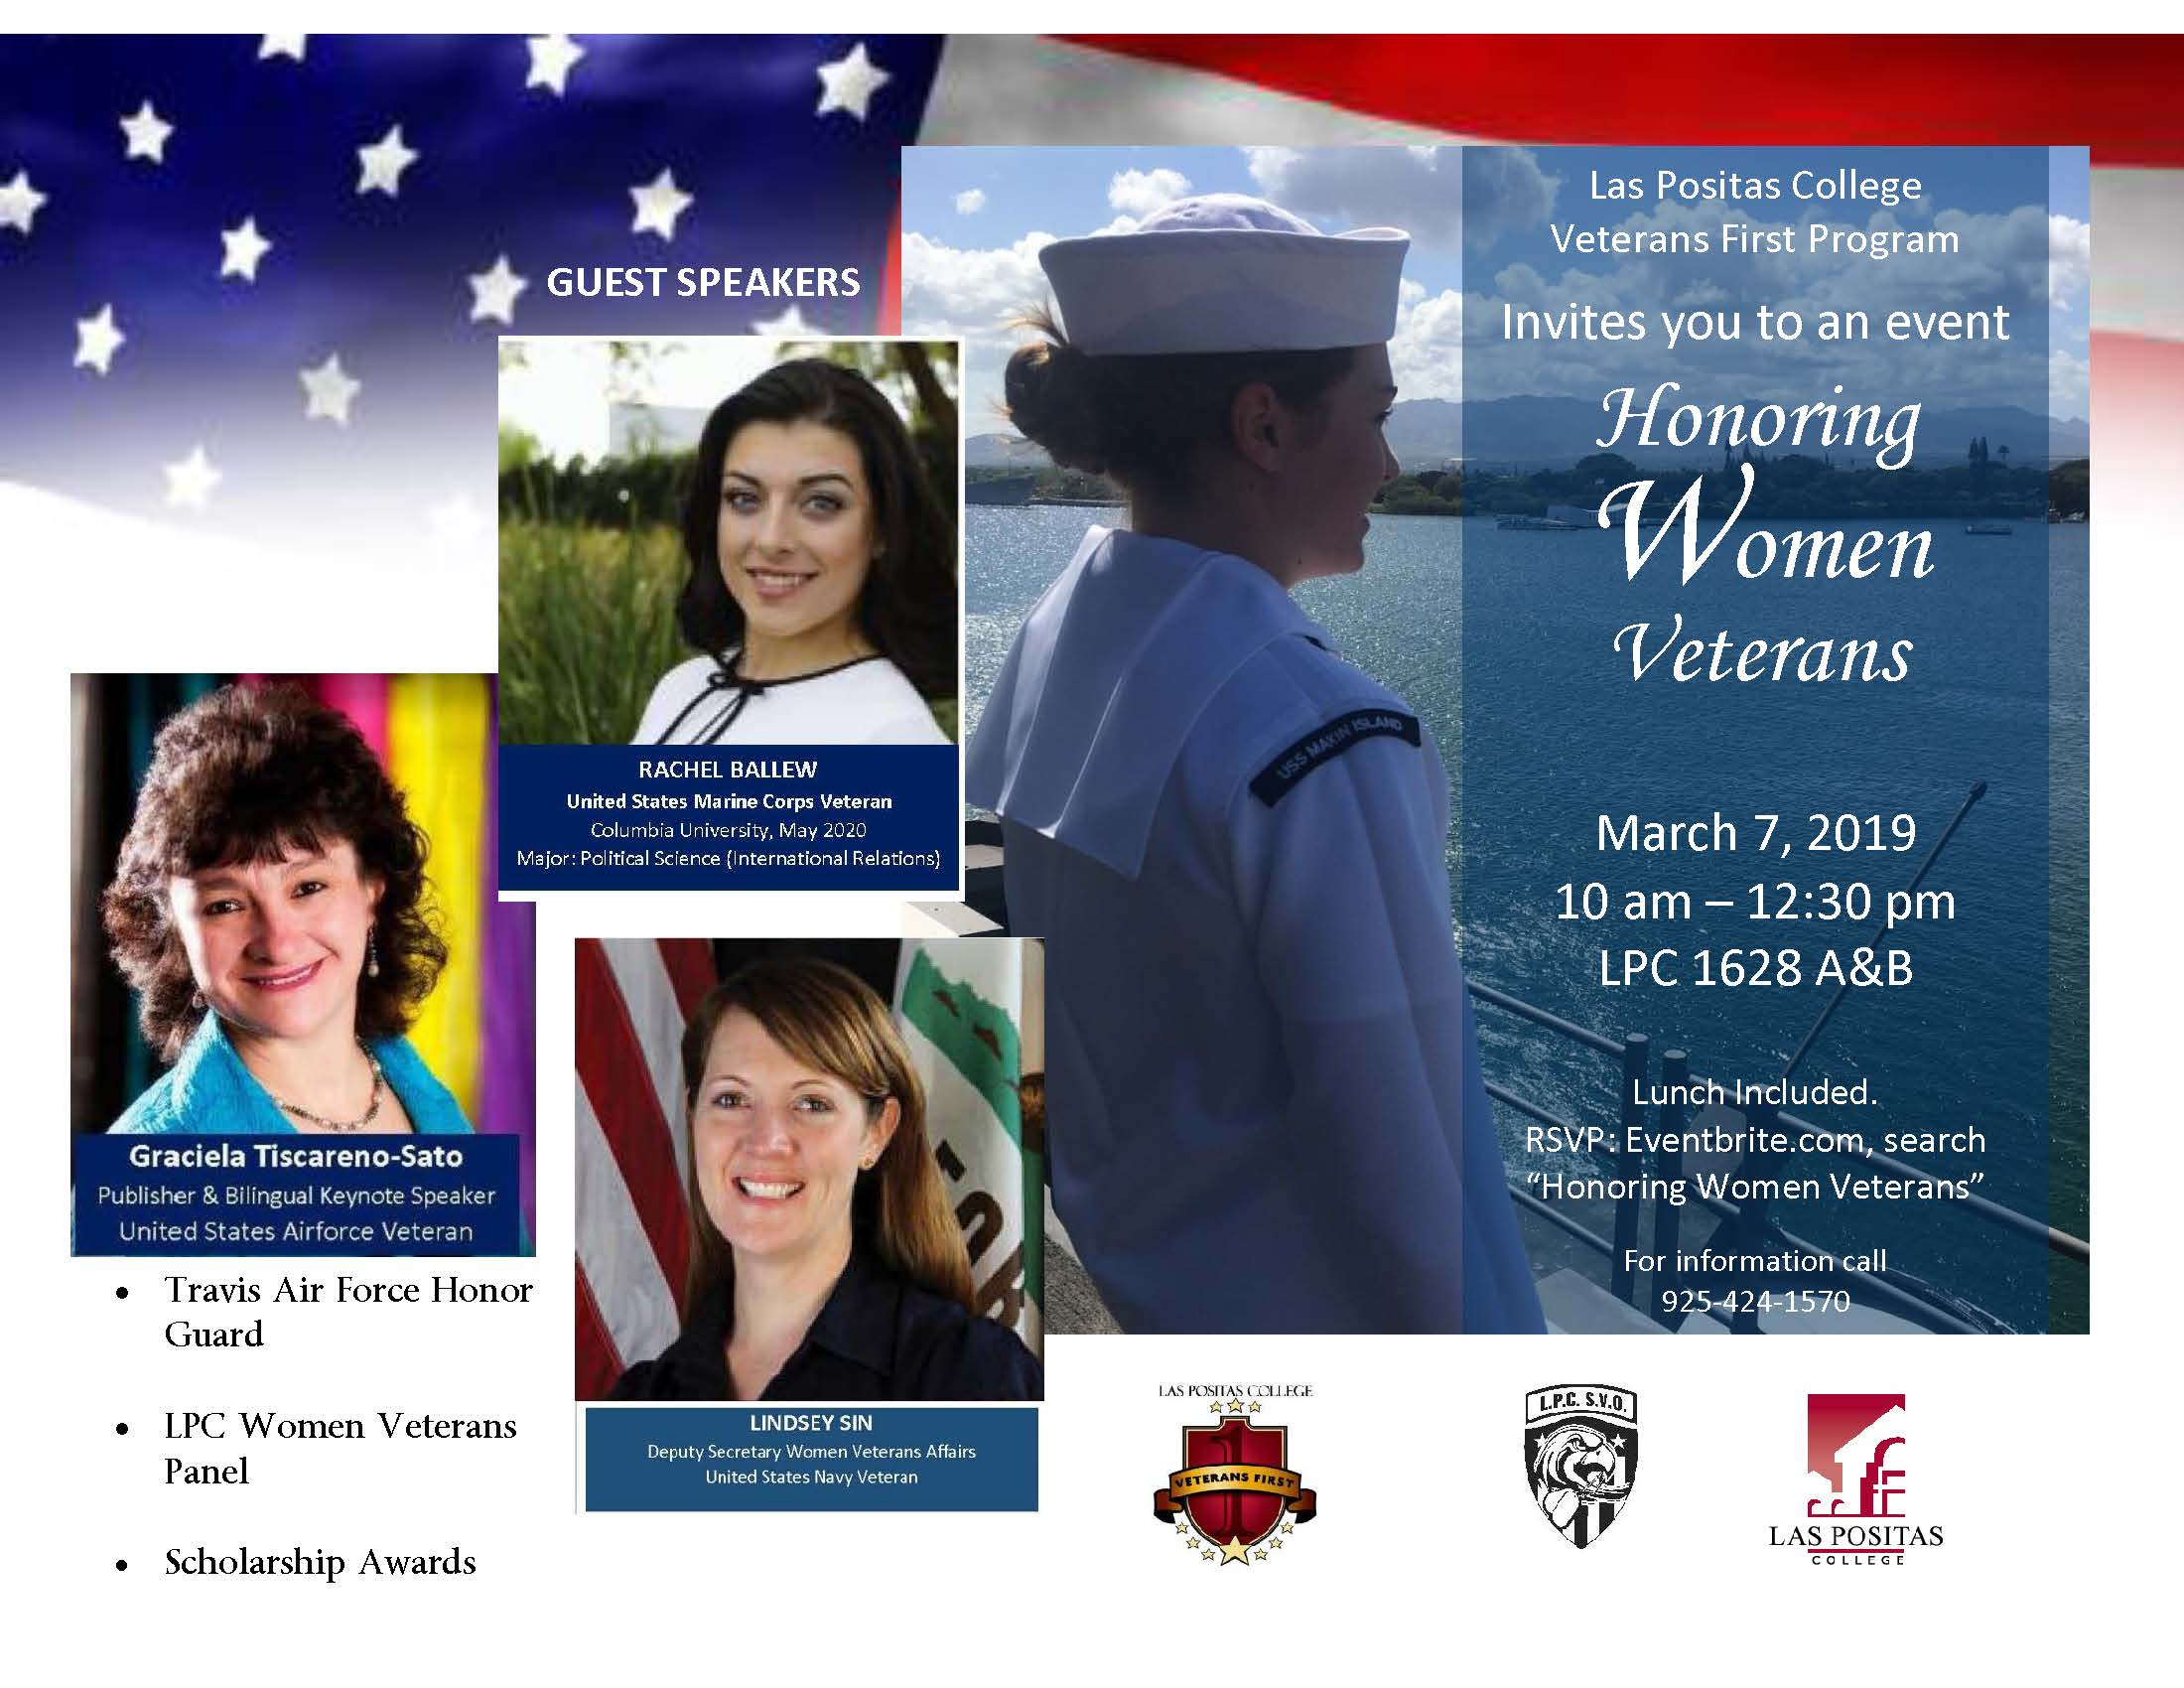 Honoring Women Veterans 2019 Flier